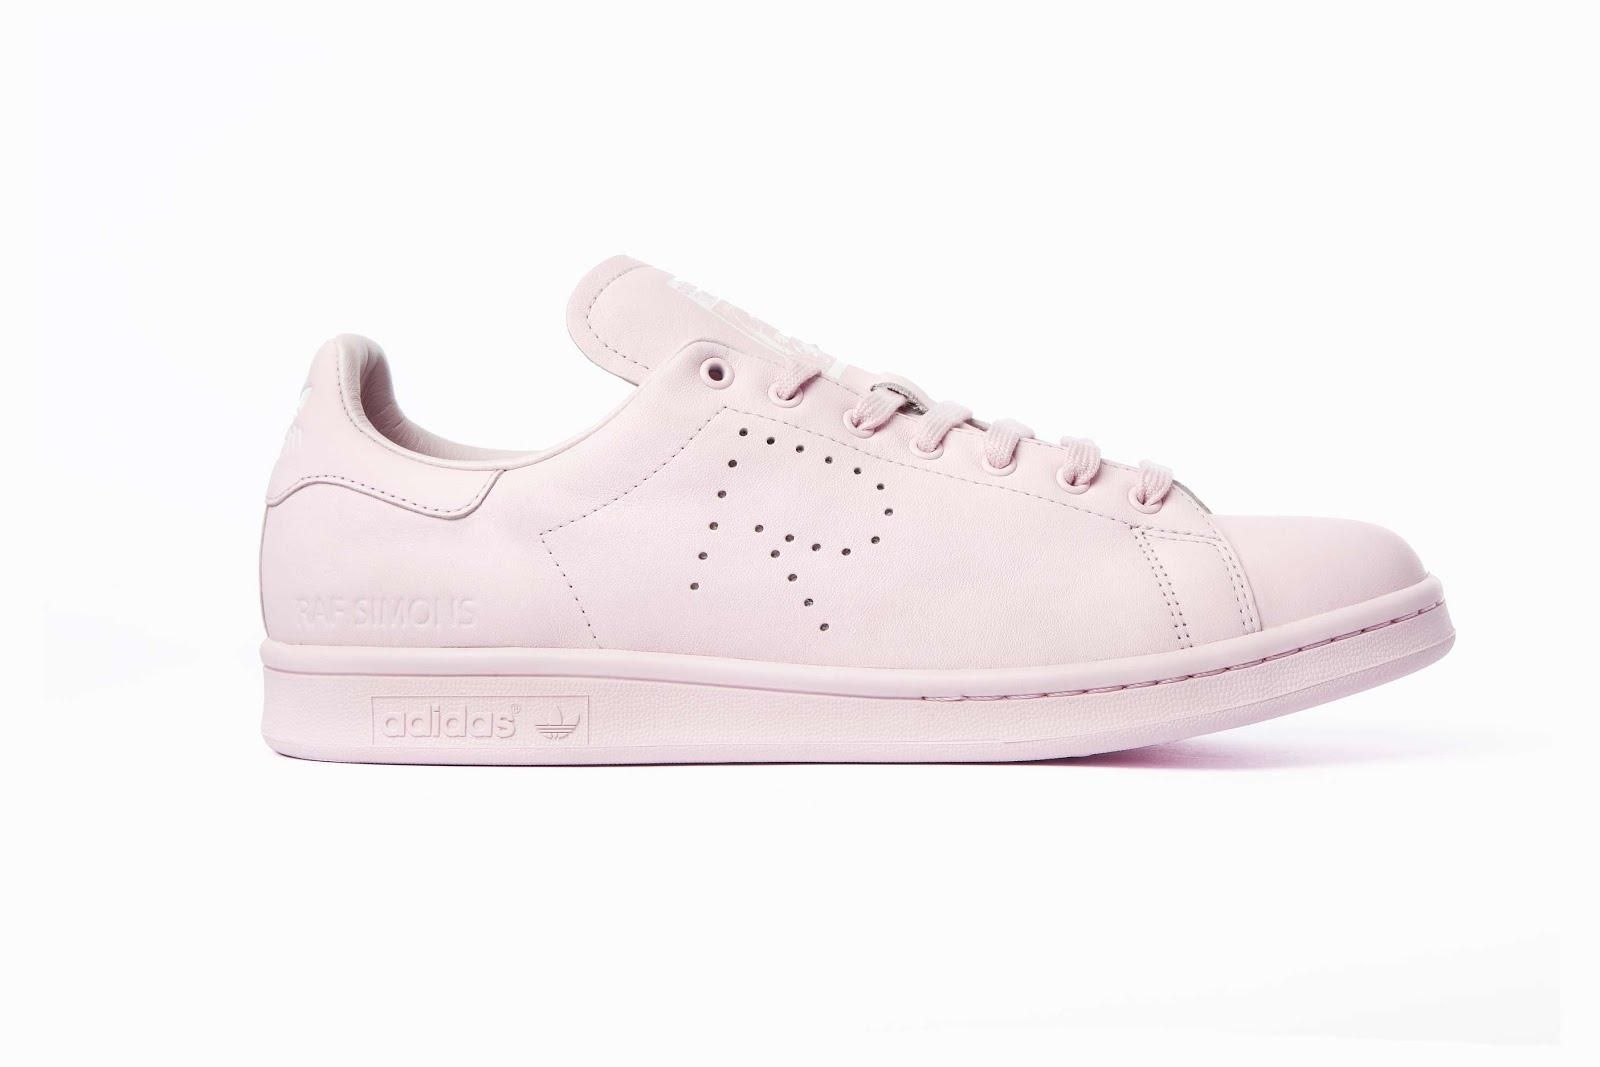 purchase cheap d8e8f 8ca62 Raf Simons Rose Jawns. Raf Simons Rose Jawns. Raf Simons Sneakers, Adidas  Stan Smith ...